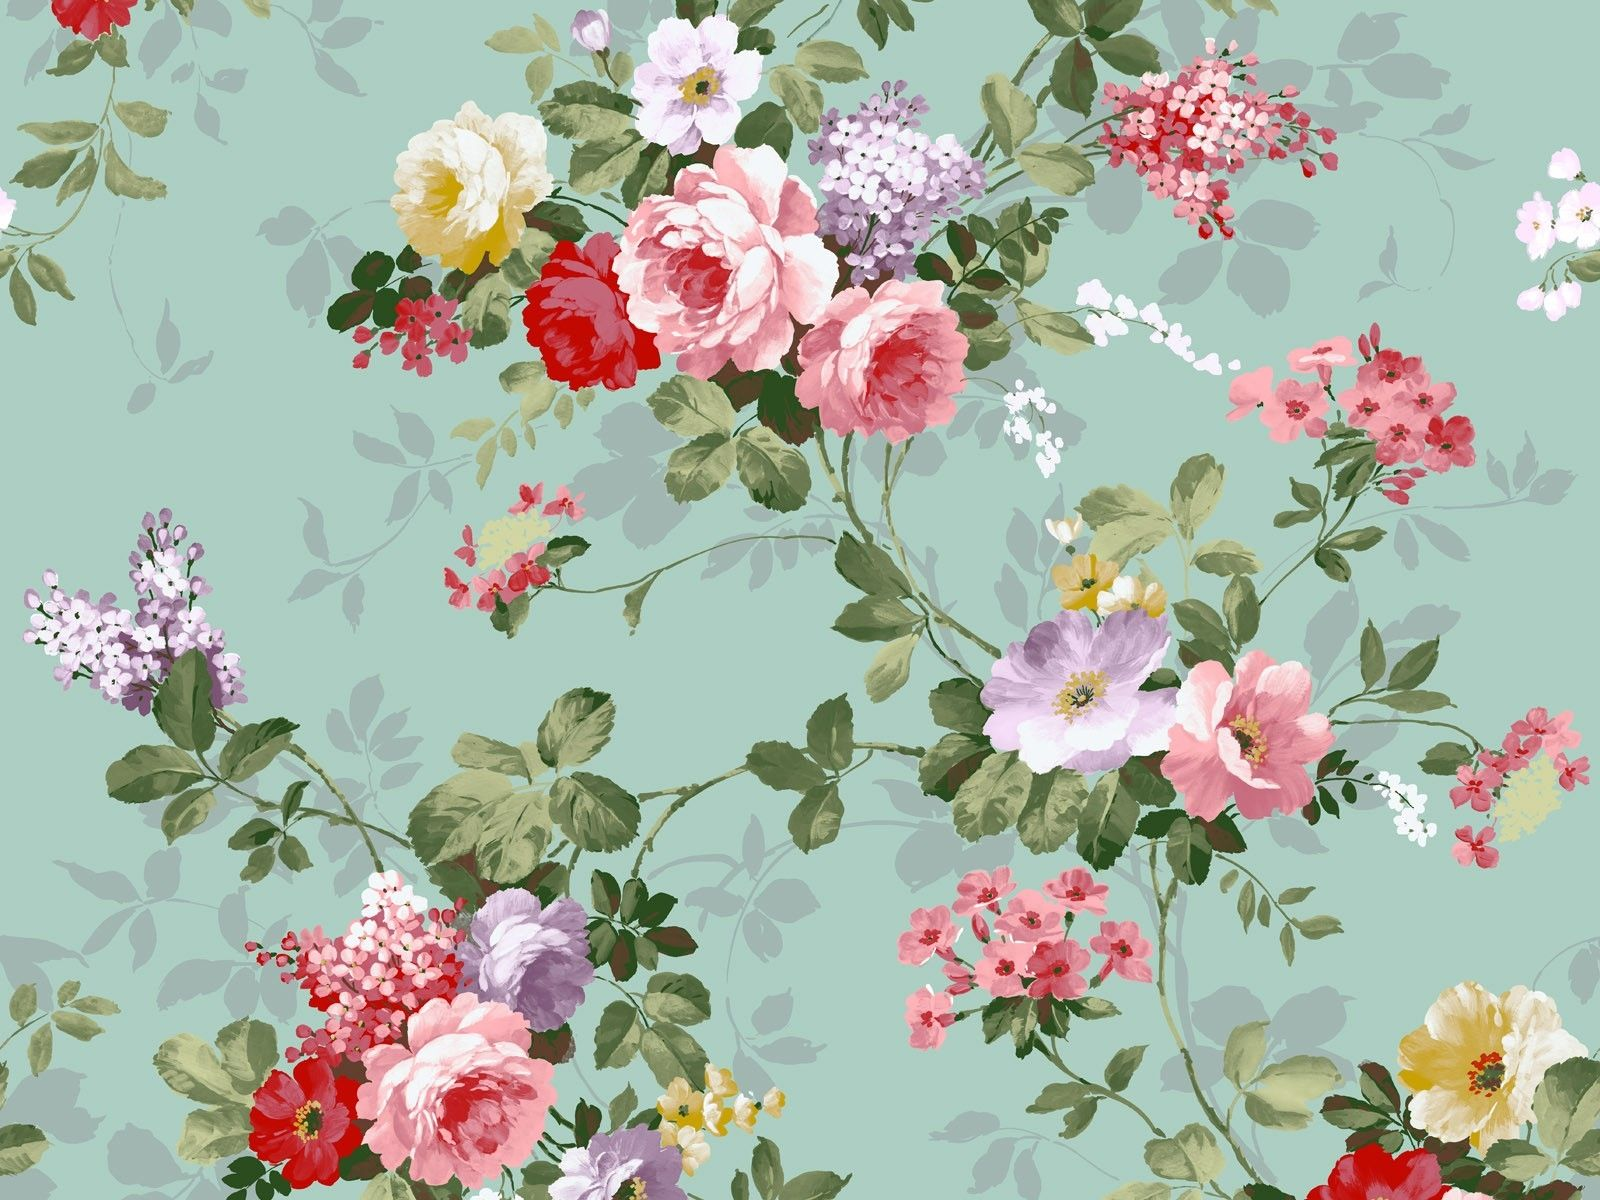 amazing vintage floral iphone wallpaper tumblr KARIŞIK